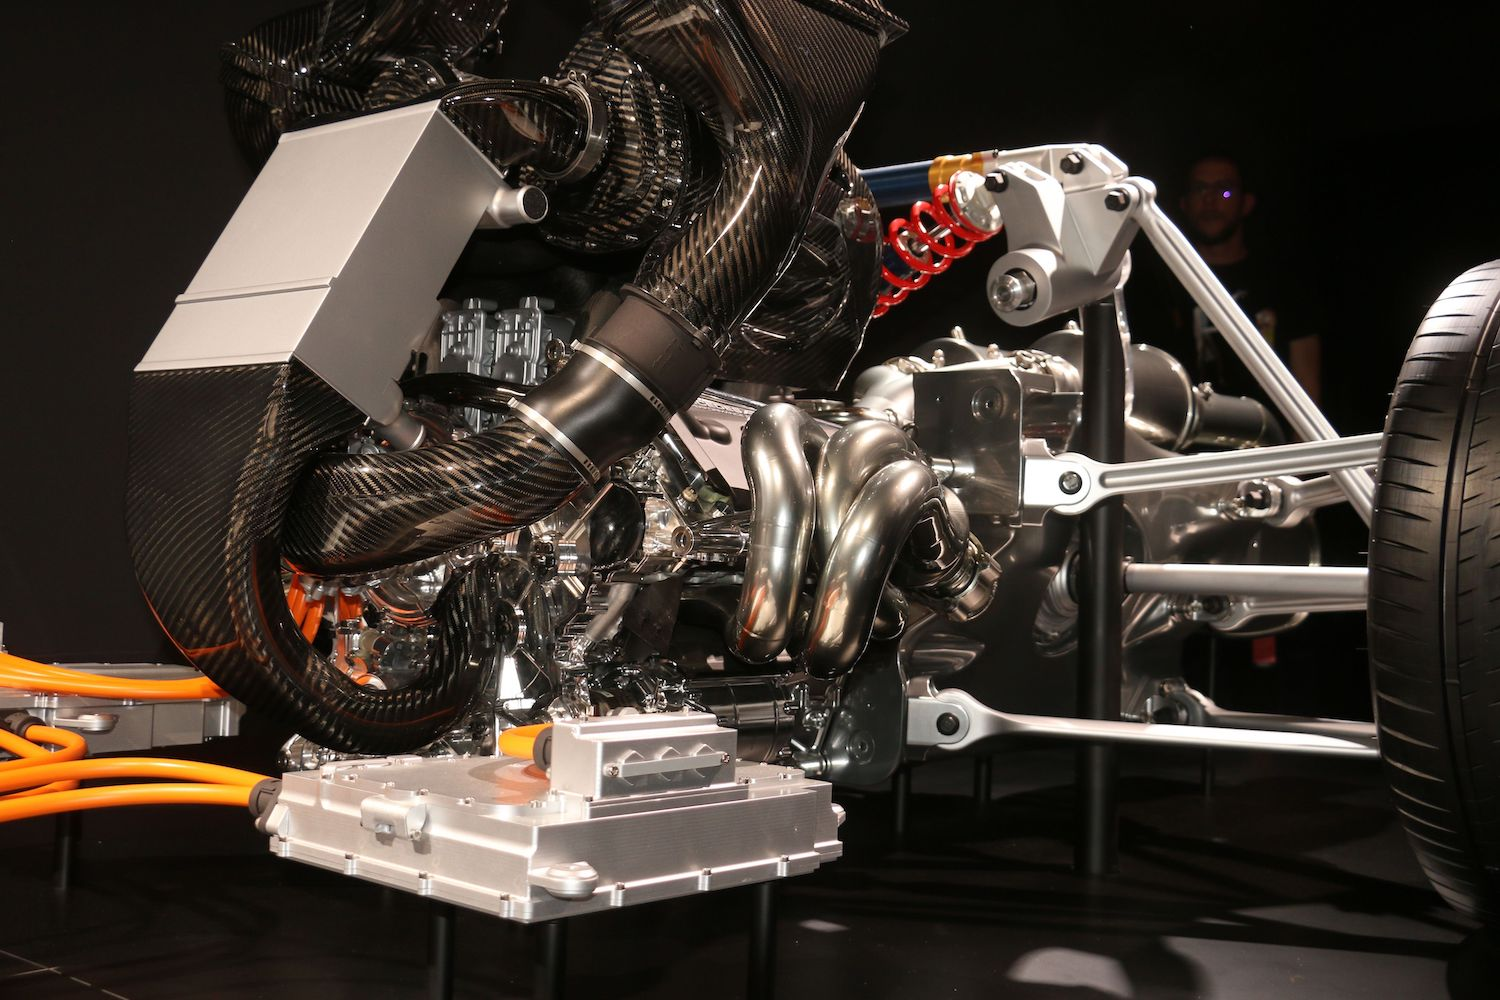 AMG powertrain close up detail